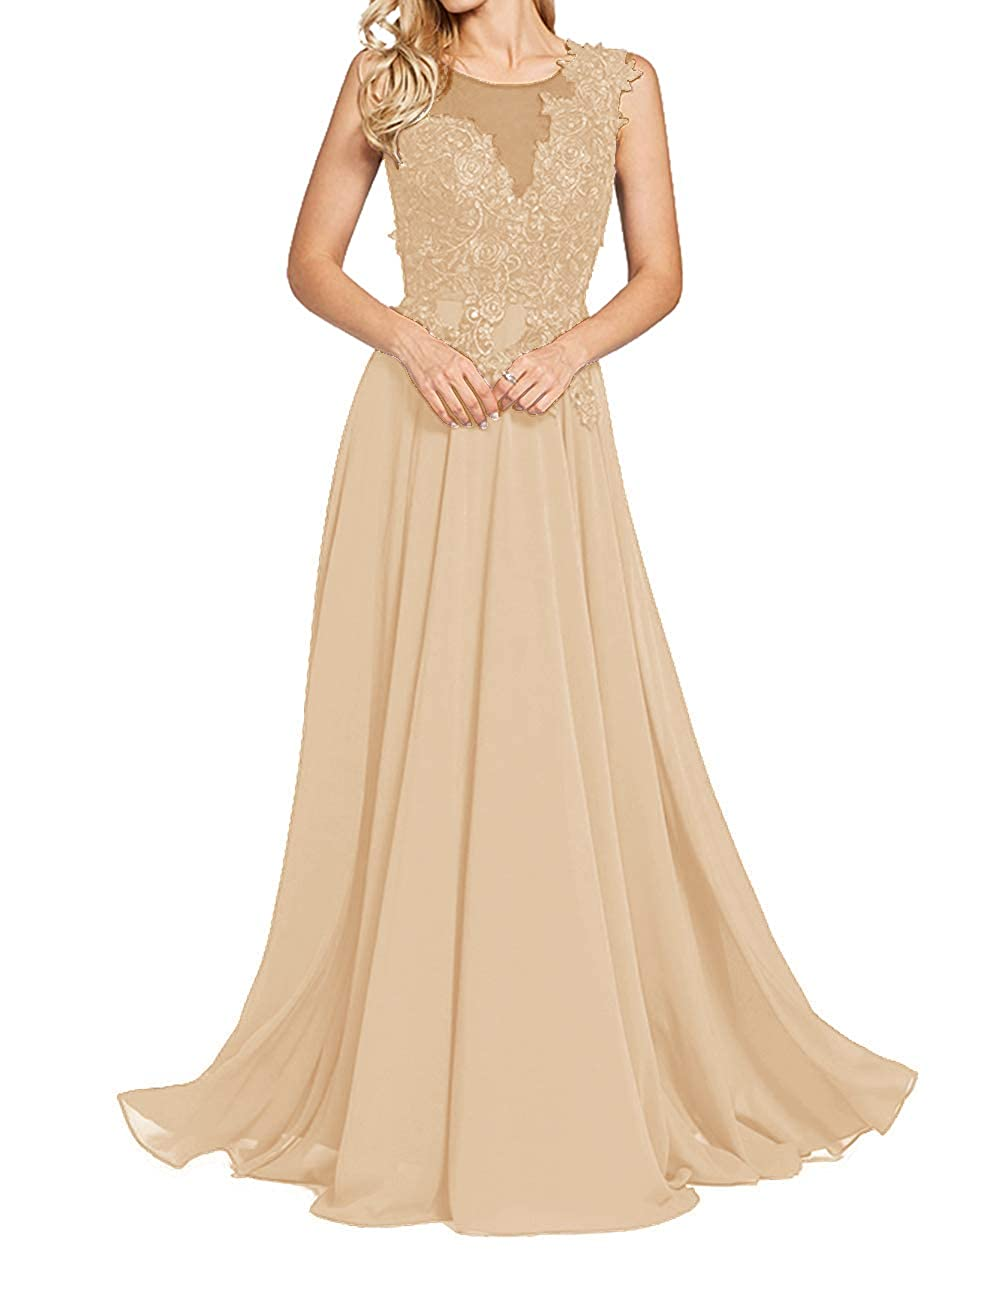 Champagne Uther Formal Evening Prom Dresses Long Appliques Bridesmaid Dress for Women Sleeveless